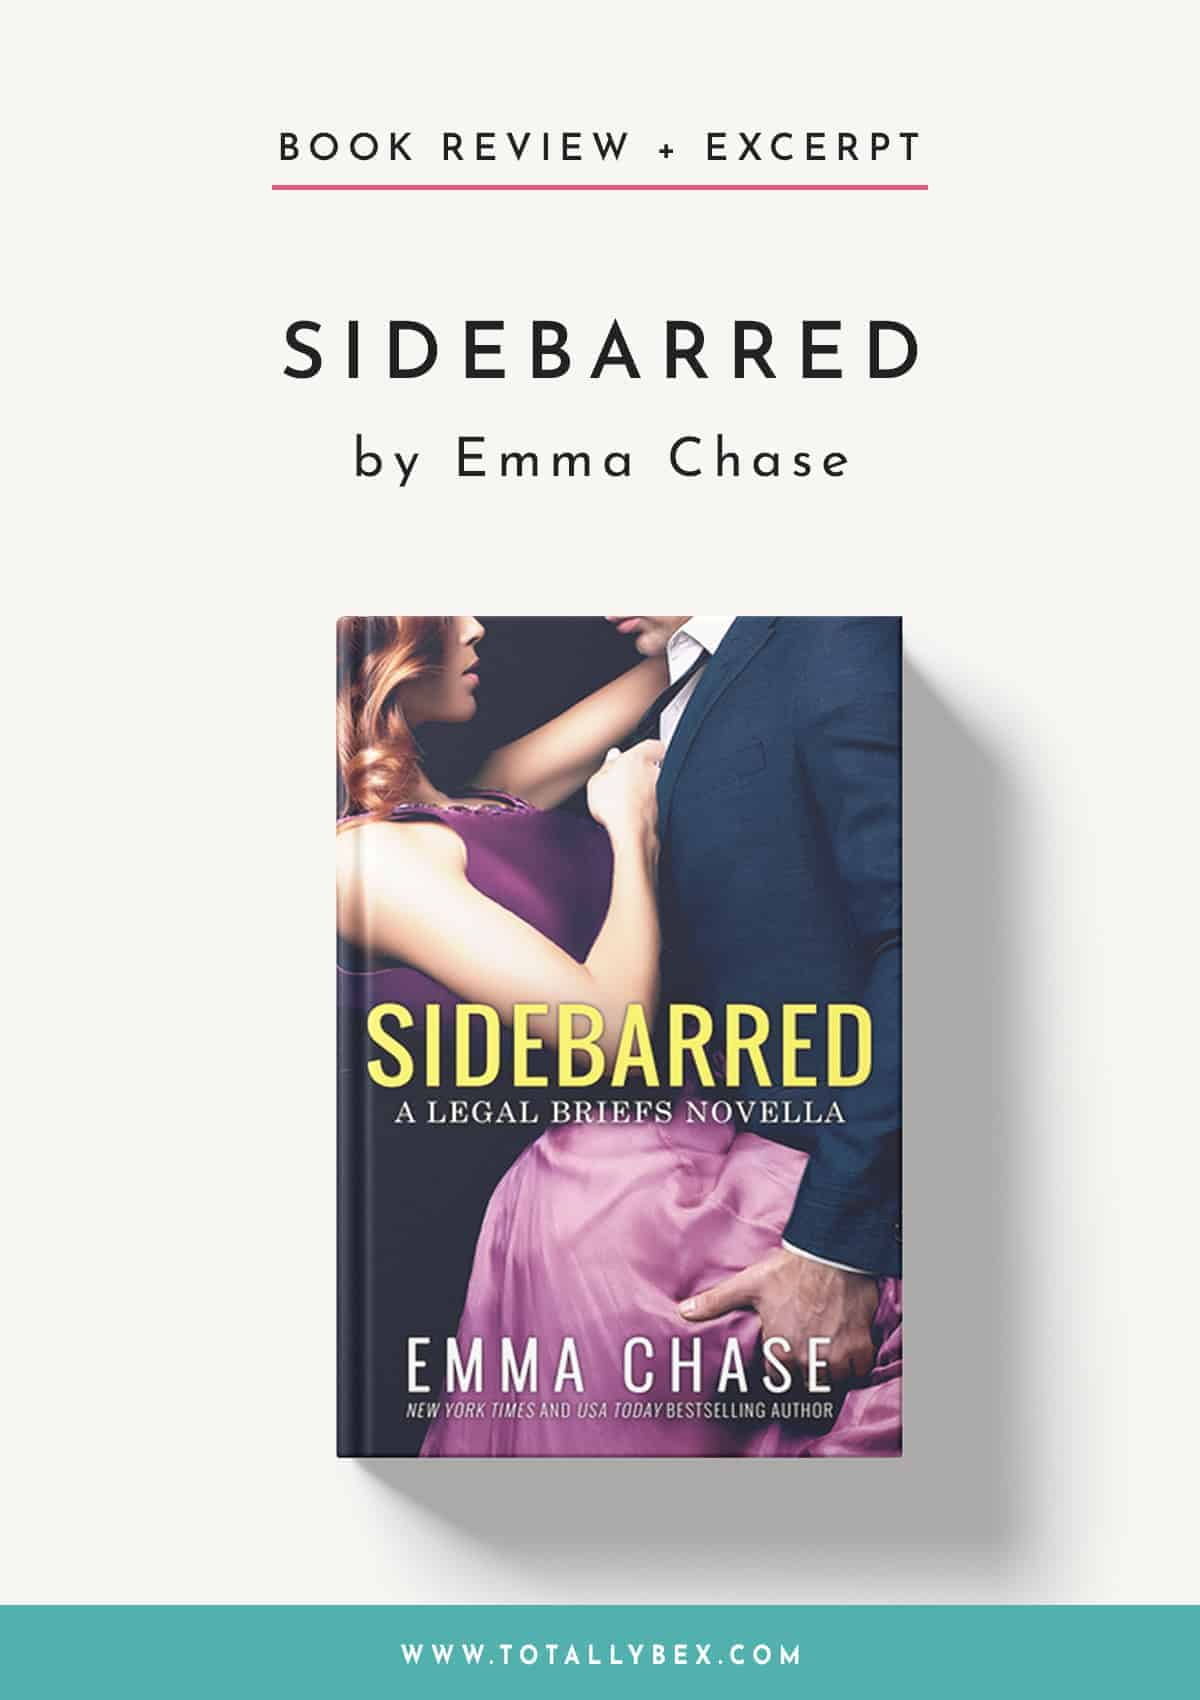 Sidebarred by Emma Chase-Book Review+Excerpt